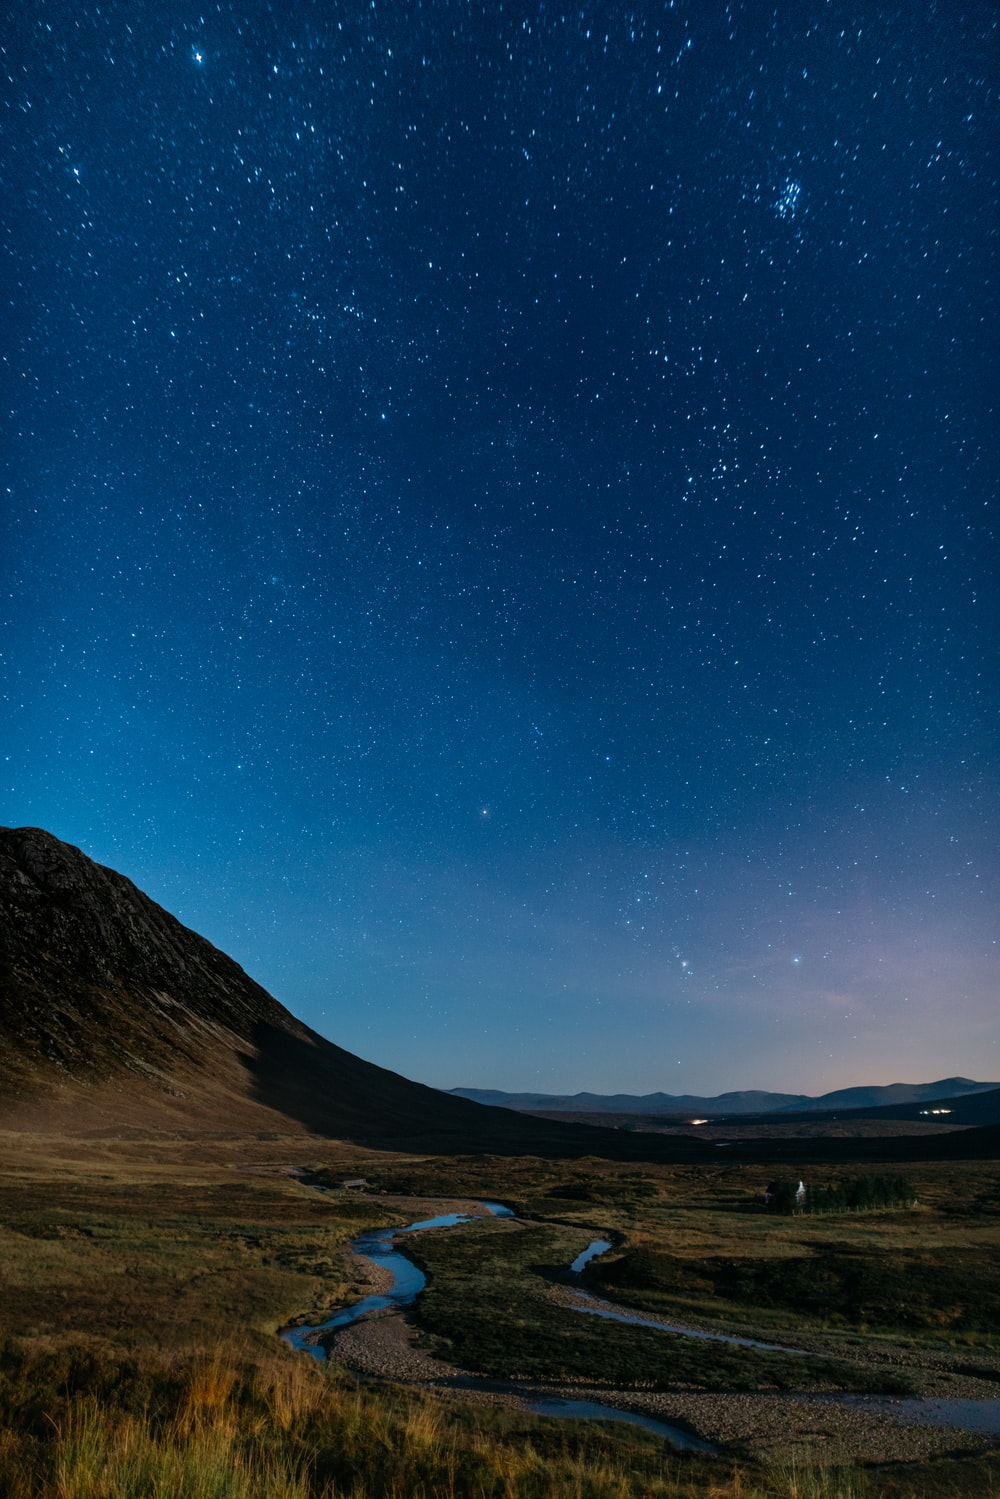 starry sky above mountain